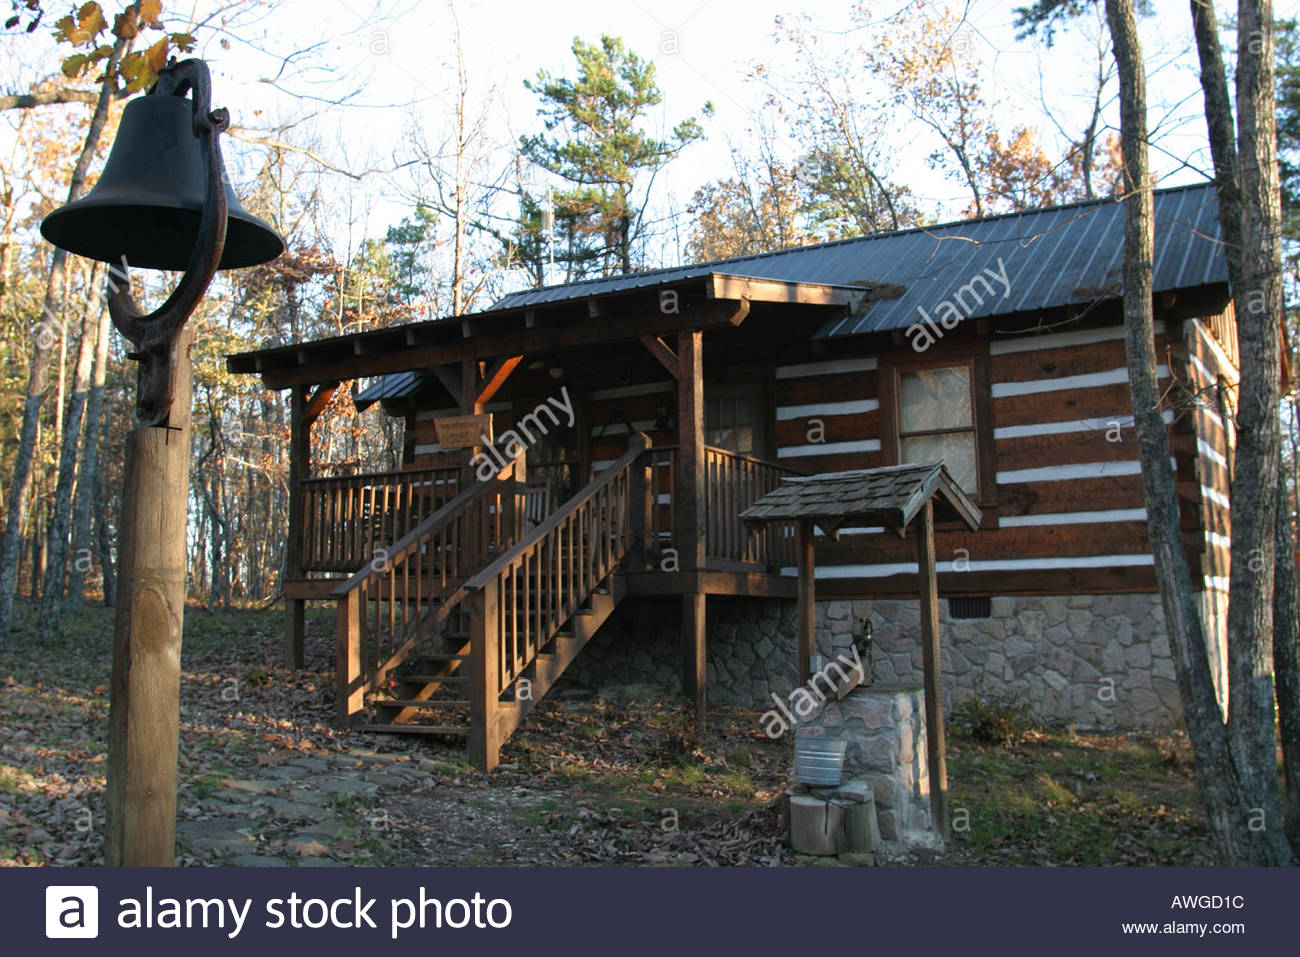 Delicieux Alabama Lookout Mountain Mentone Log Cabin Bell Vacation Rental Cabin